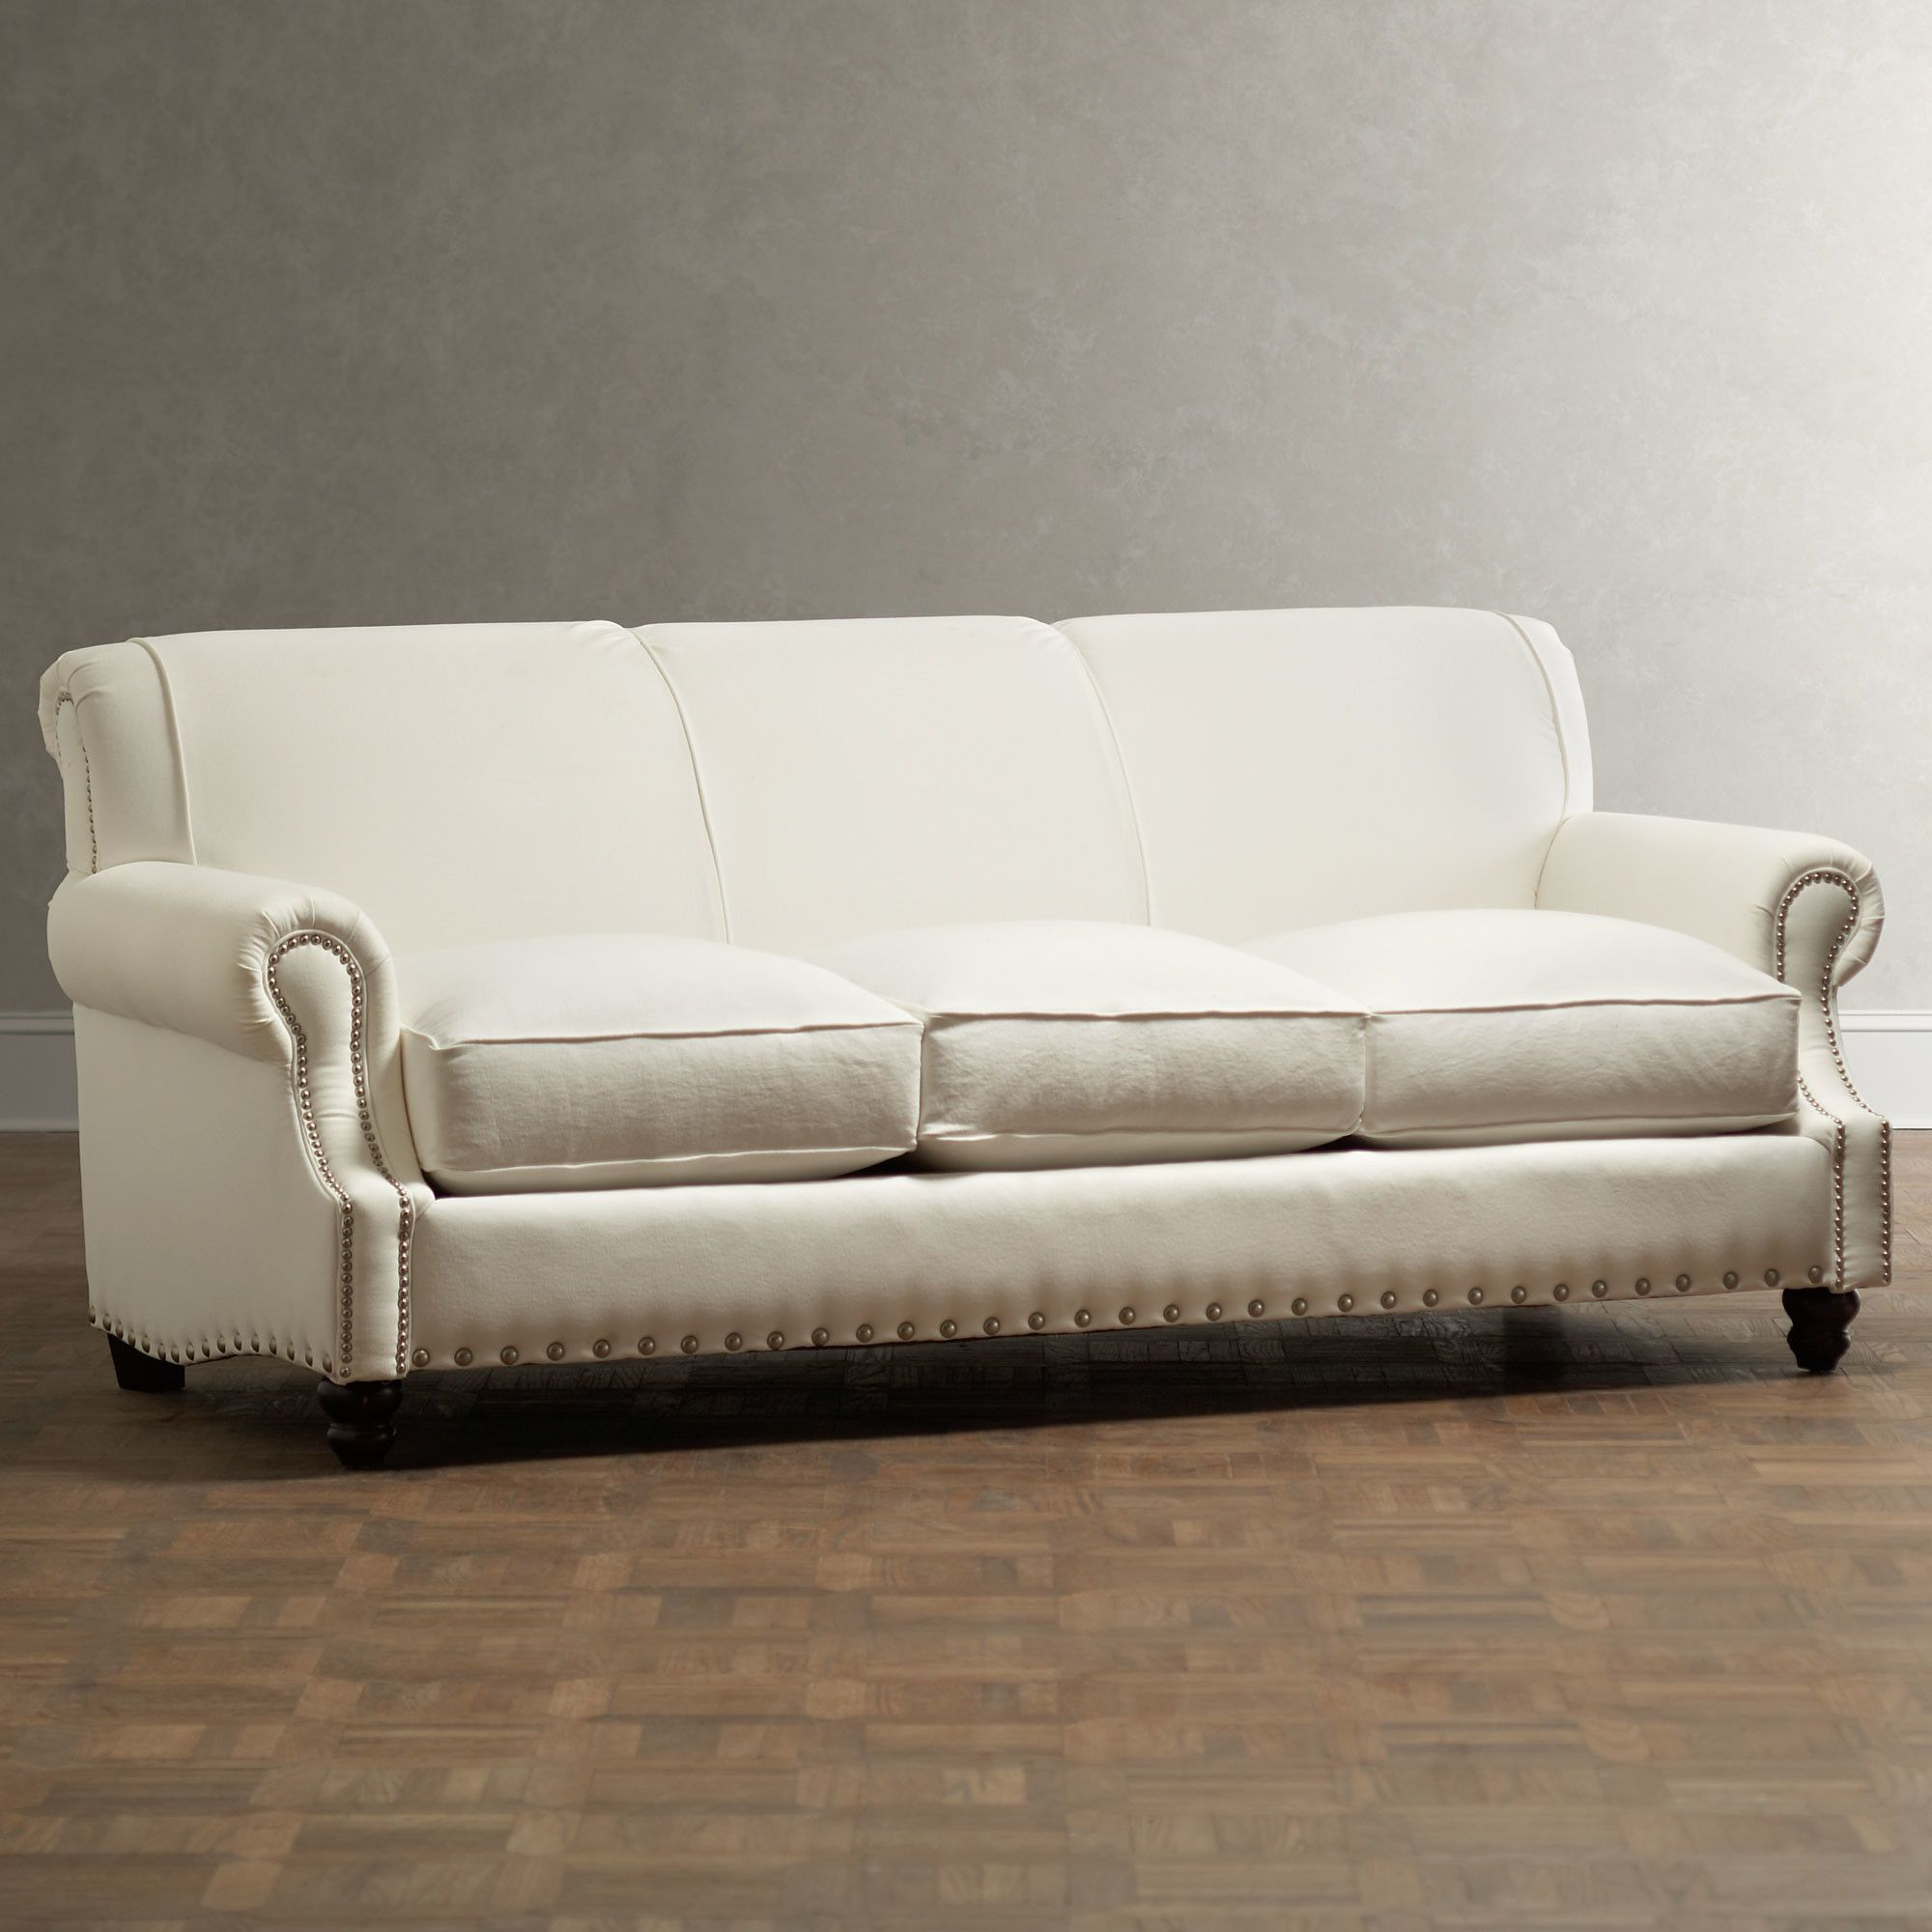 Landry Sofa | Birch Lane, Birch And Living Rooms Intended For Landry Sofa Chairs (View 7 of 25)